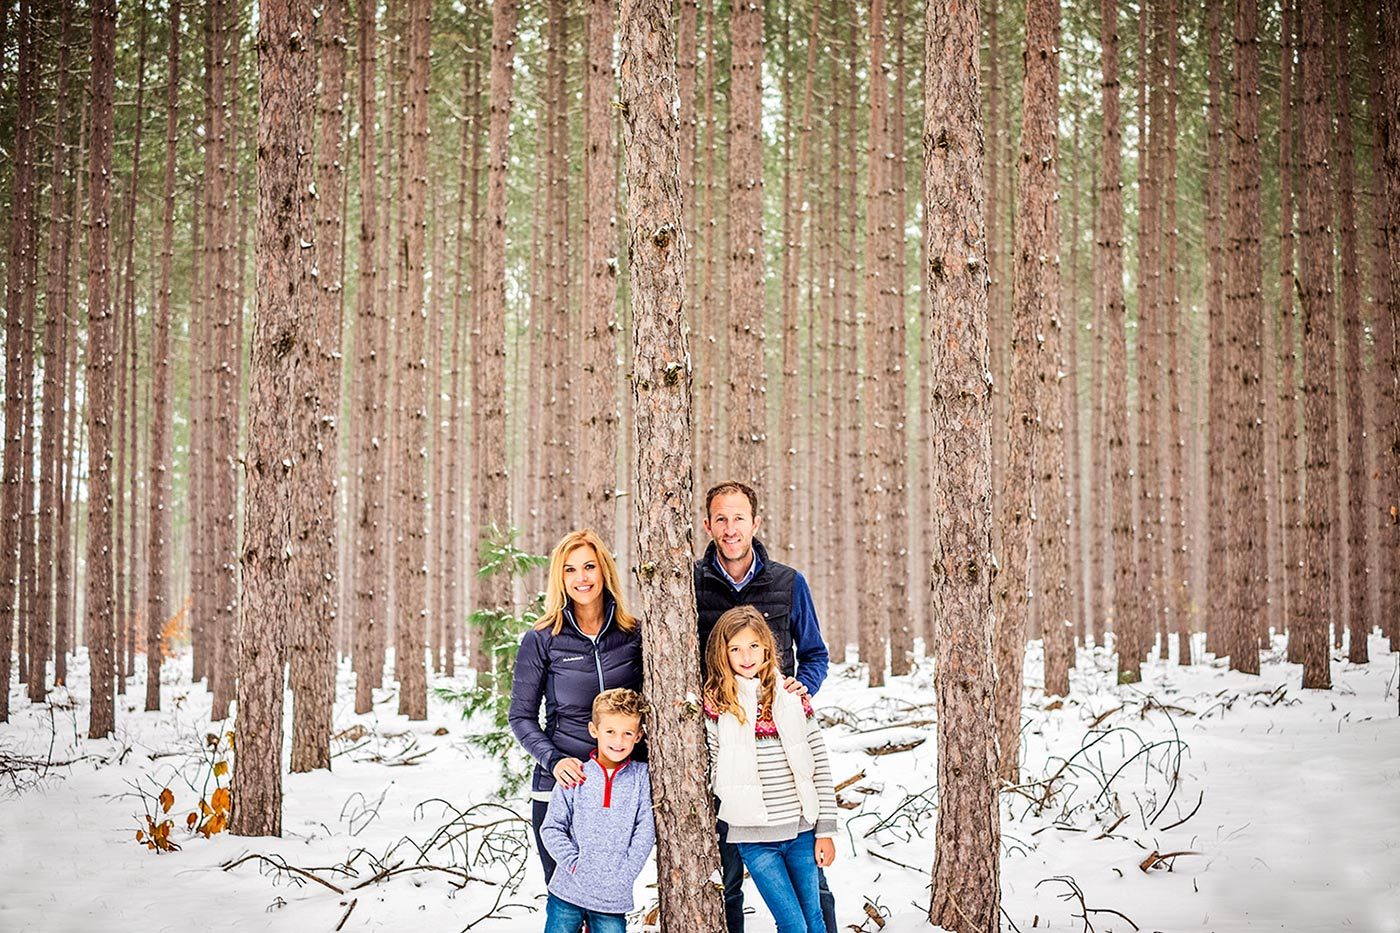 Winter family portait session by Sheri Kowalski a photographer in northern Michigan.